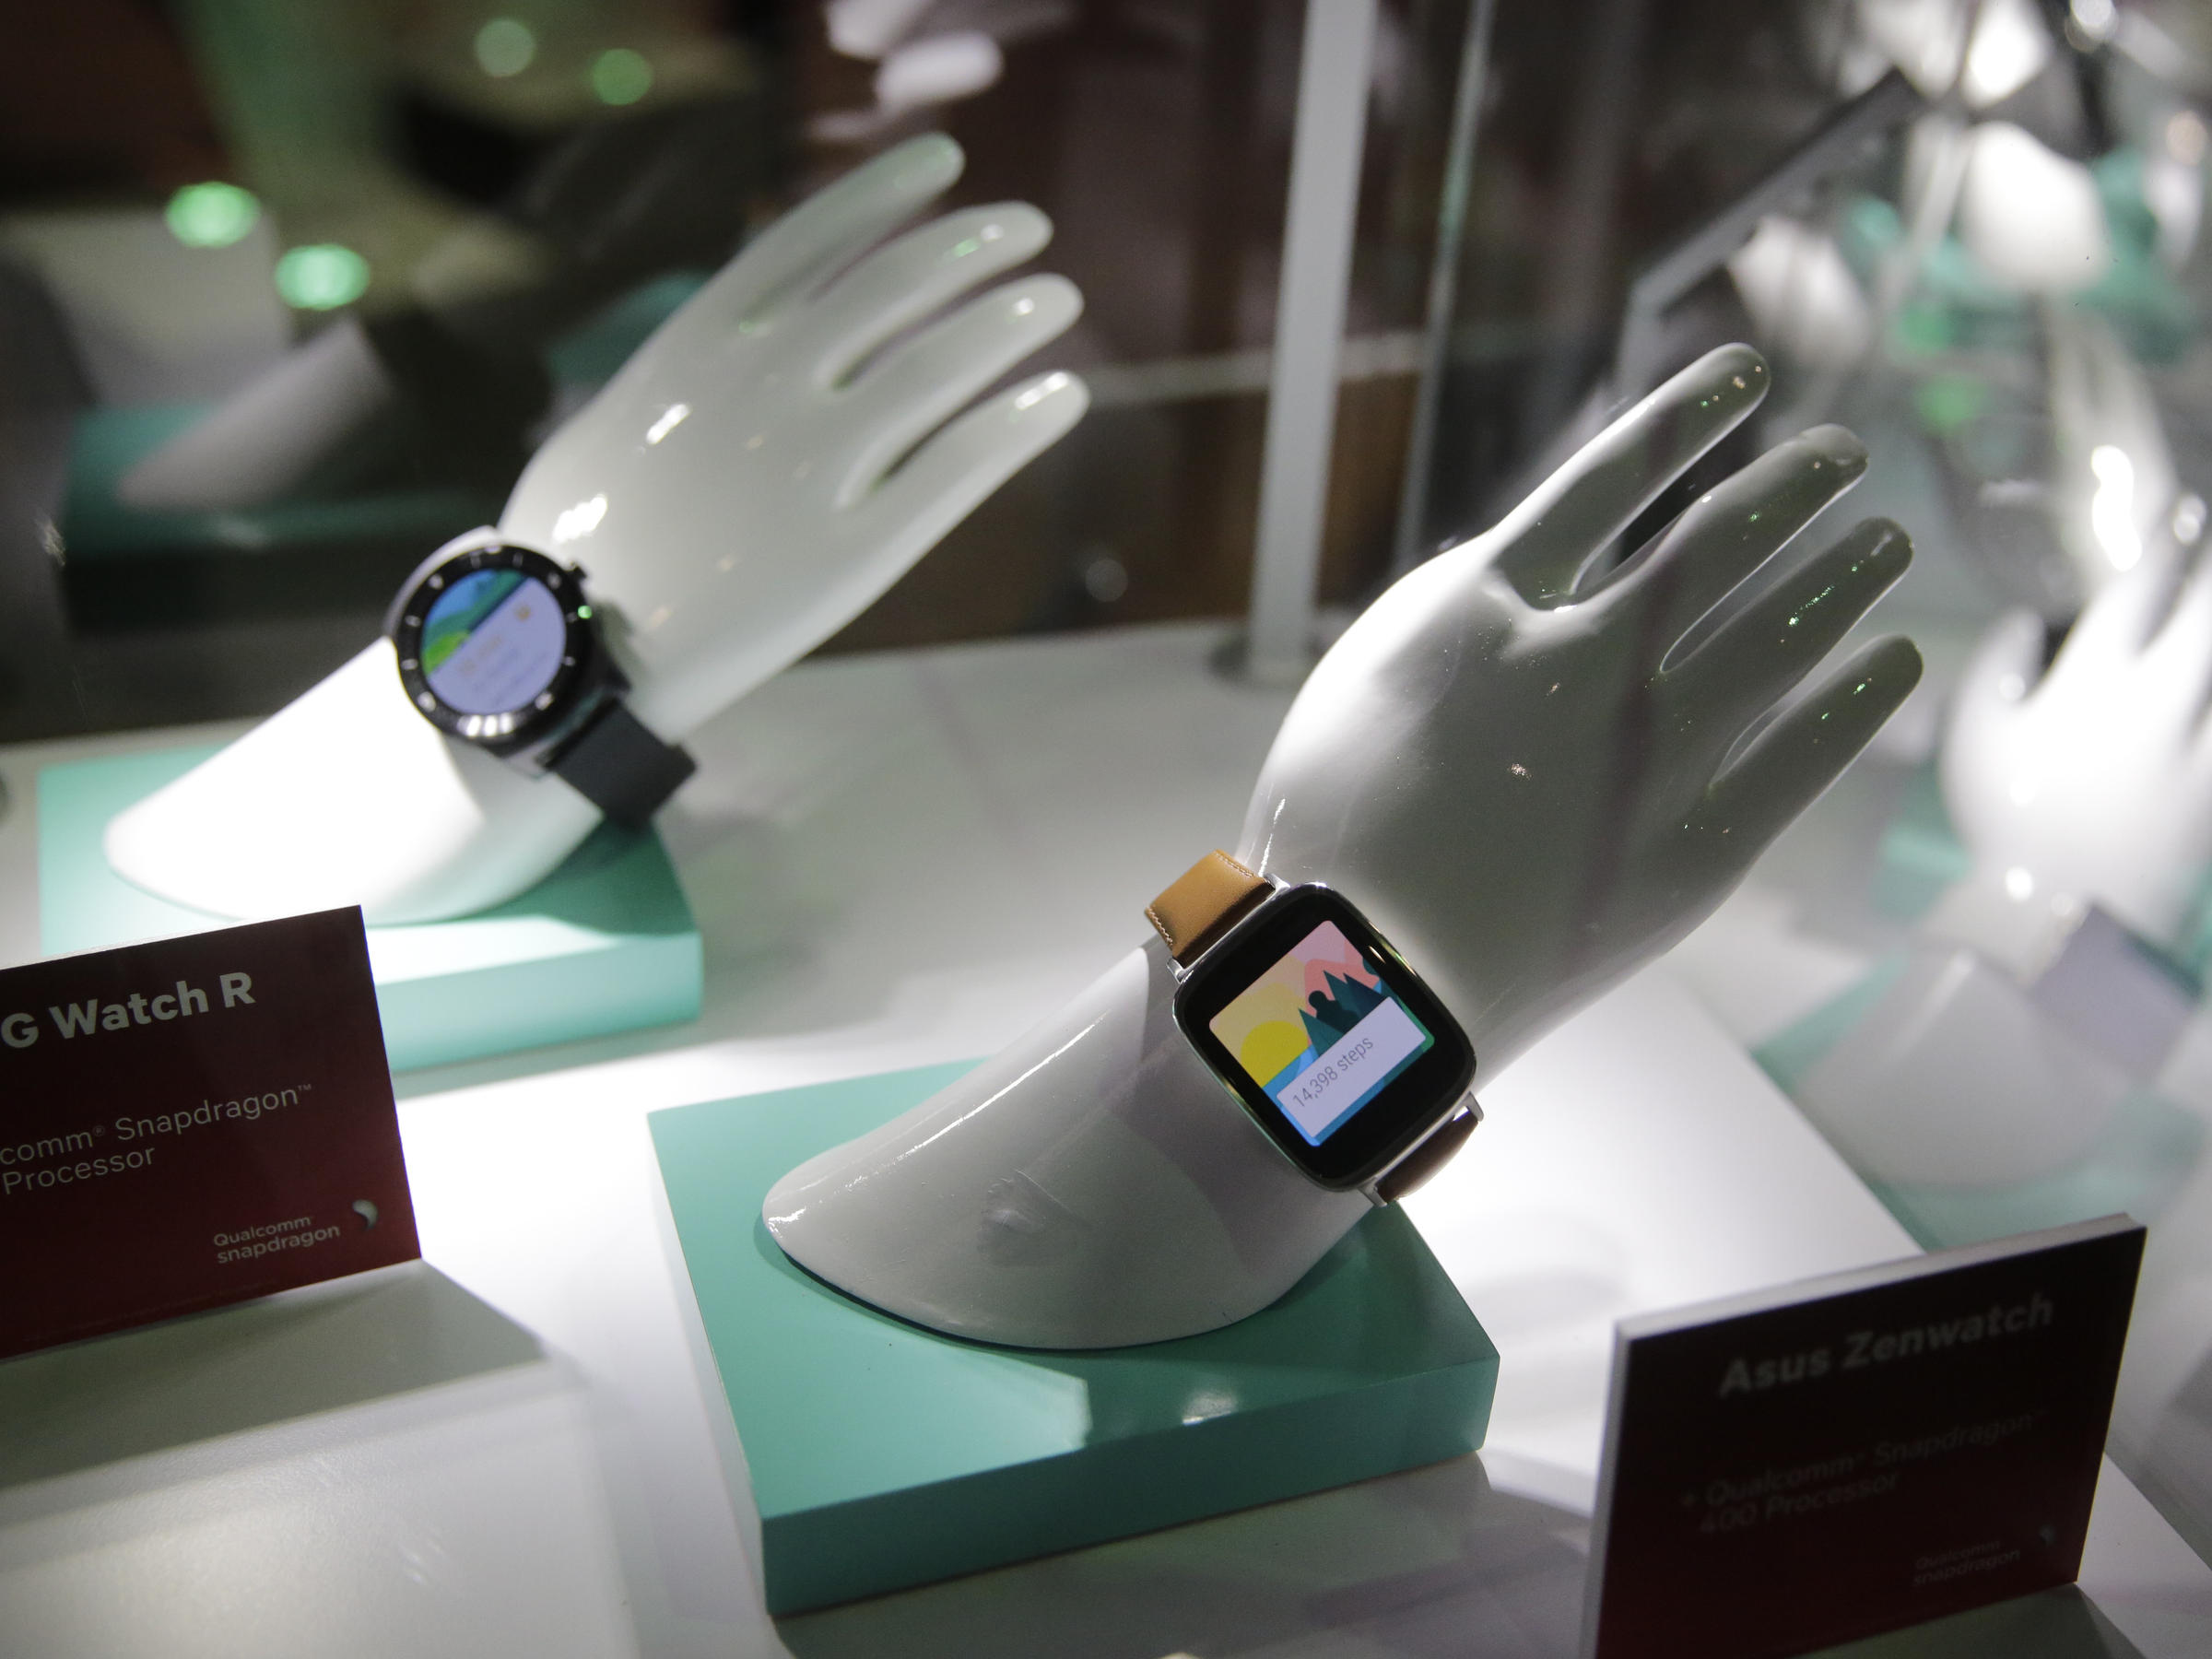 Qualcomm Will Do Better Chipsets to Wearables